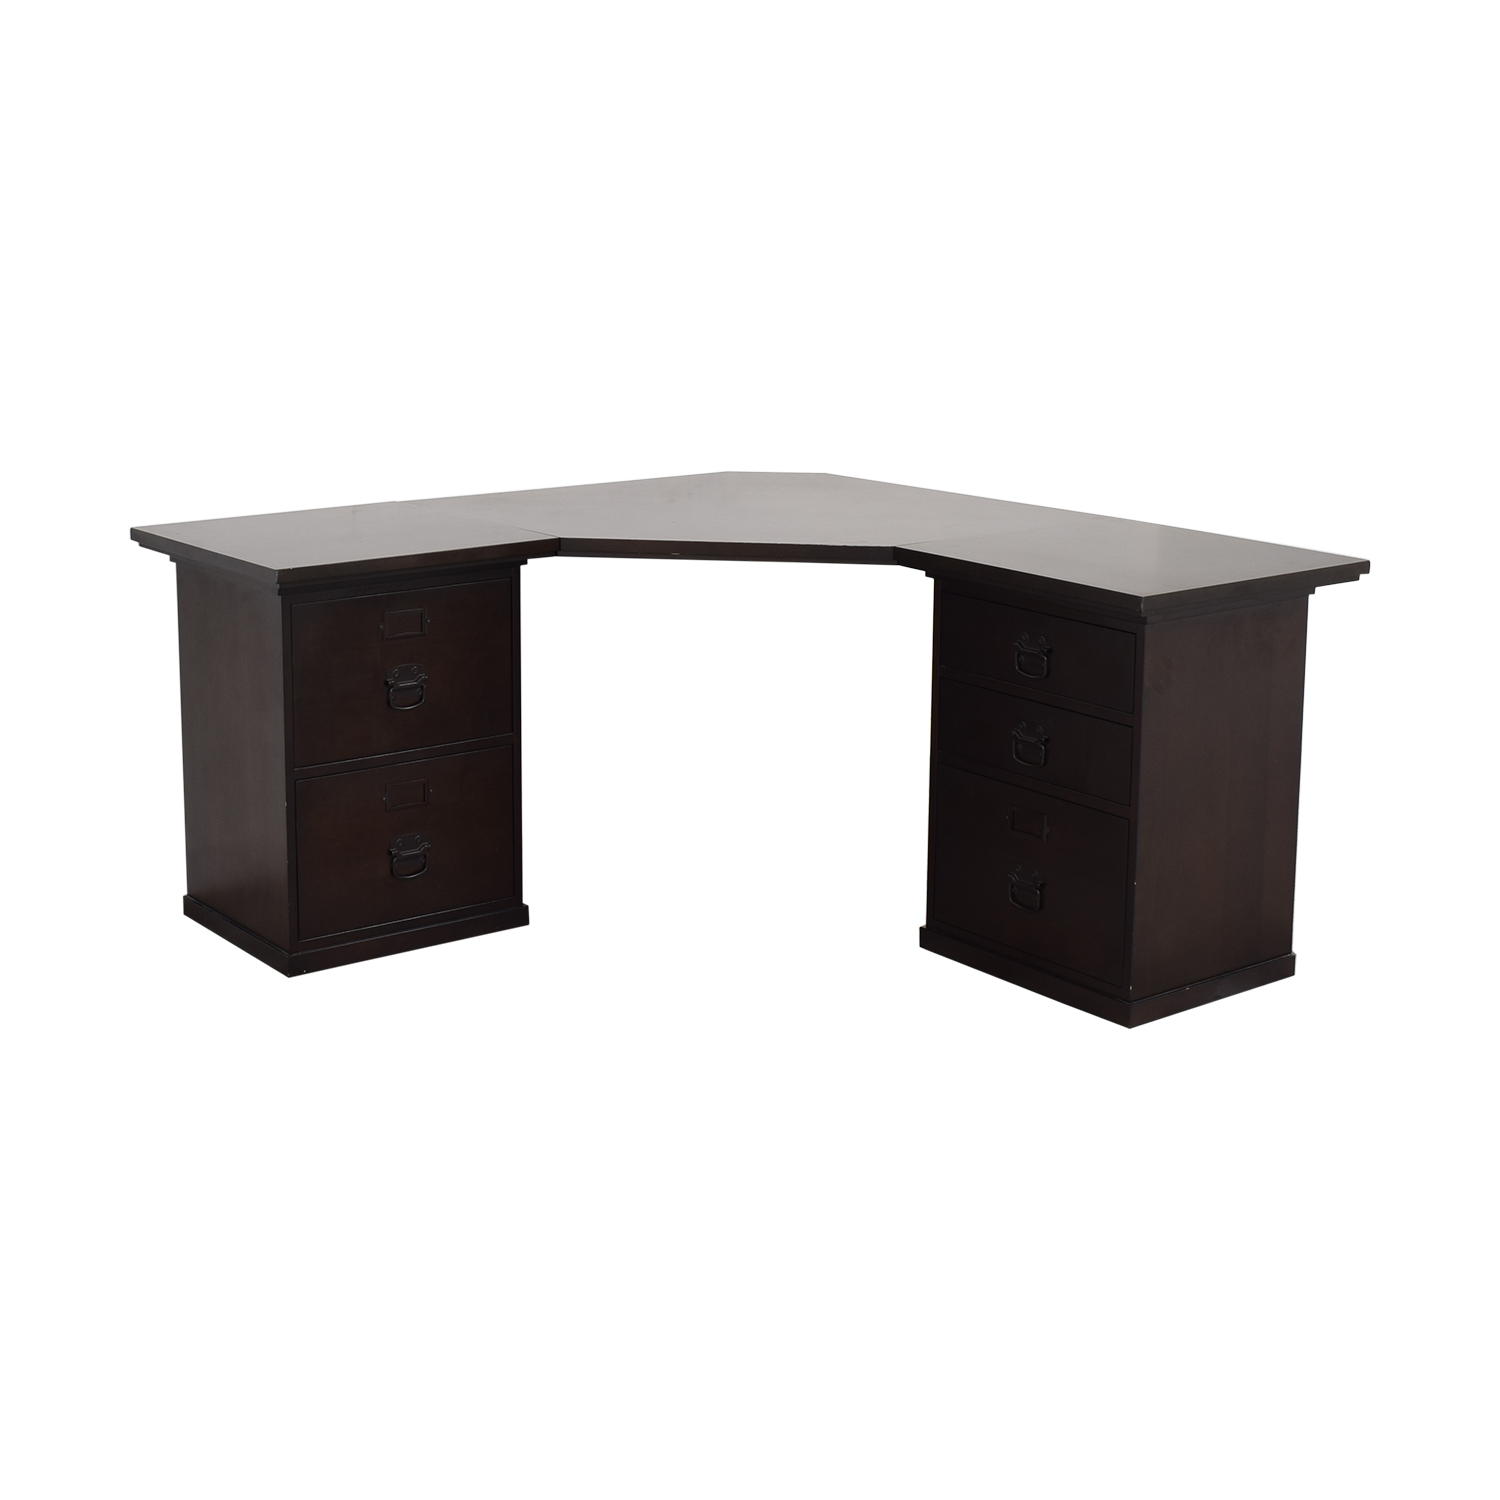 West Elm West Elm Corner Desk